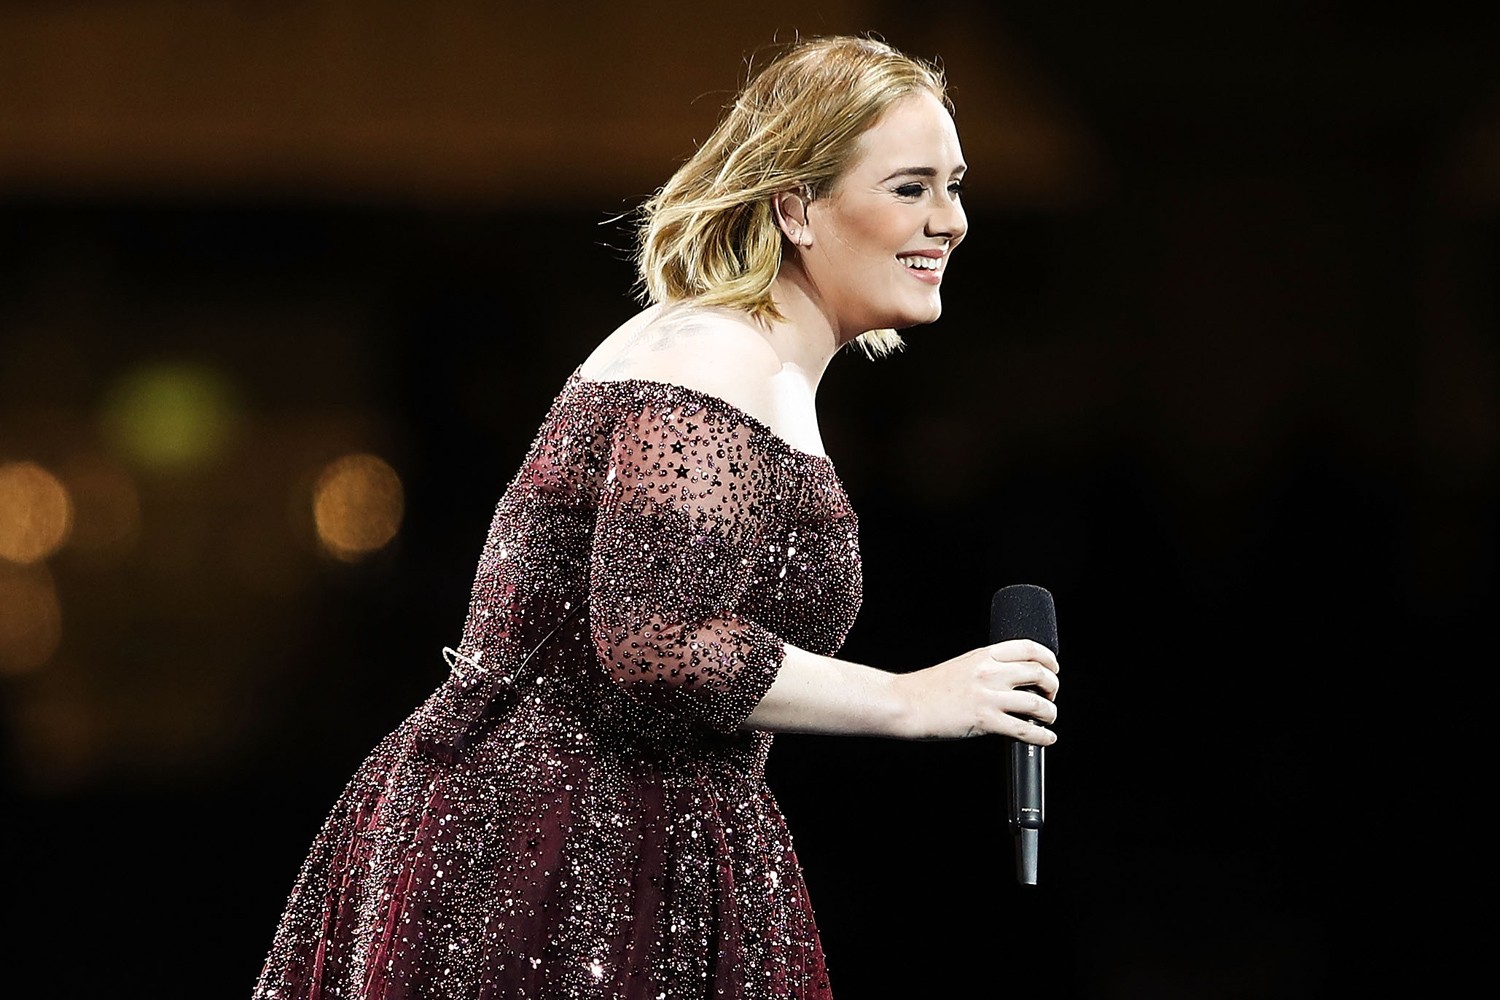 Good Evening Hd Wallpaper Fans Stunned After Finding Out Slowed Down Adele Track